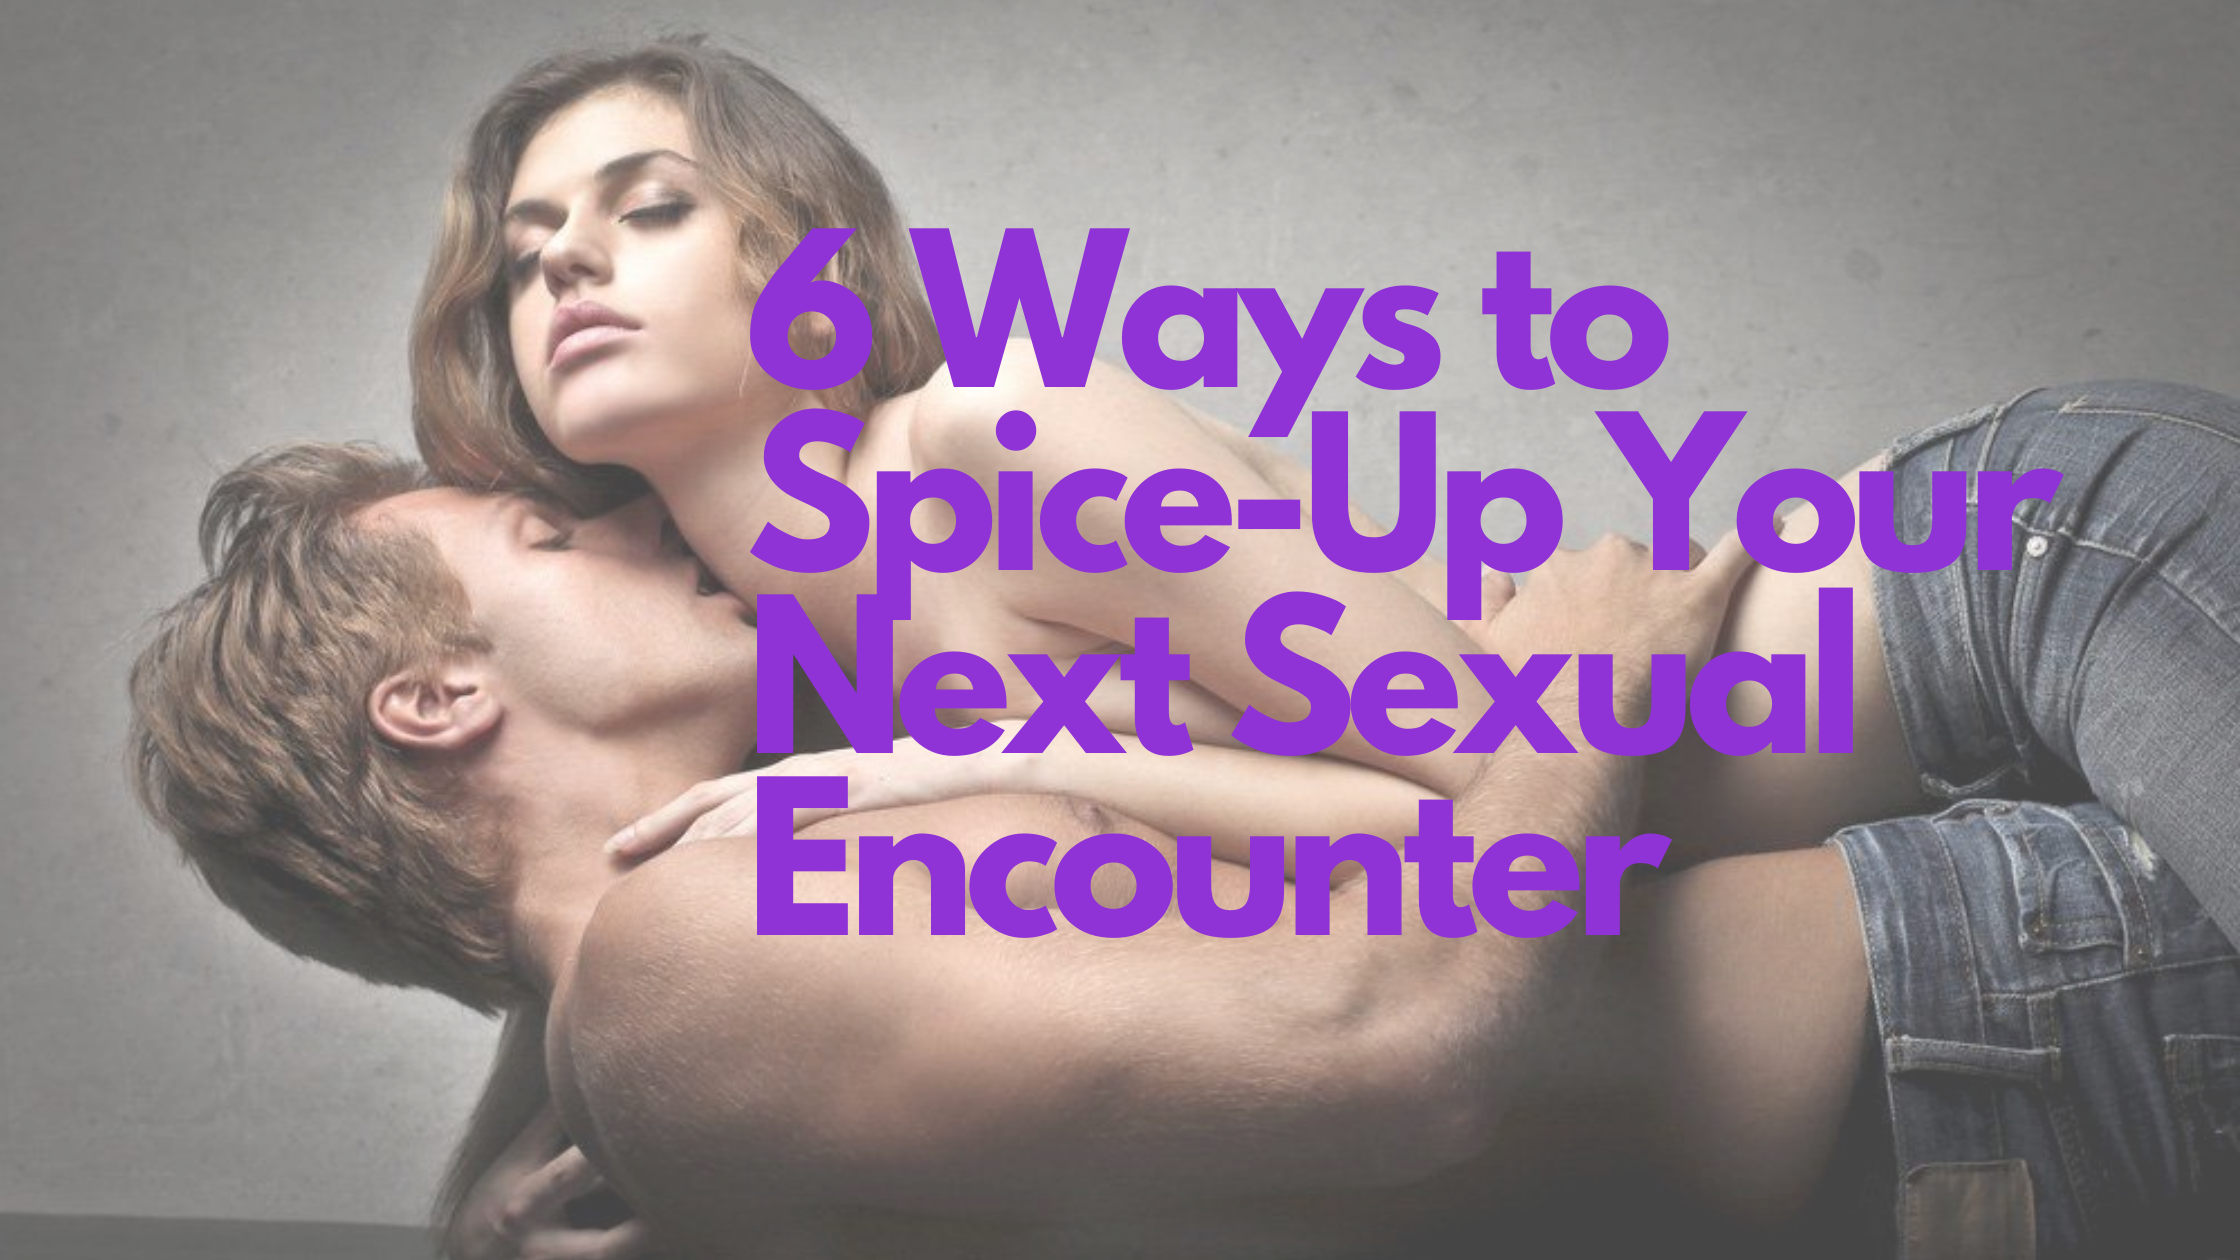 6-ways-to-spice-up-sex.png